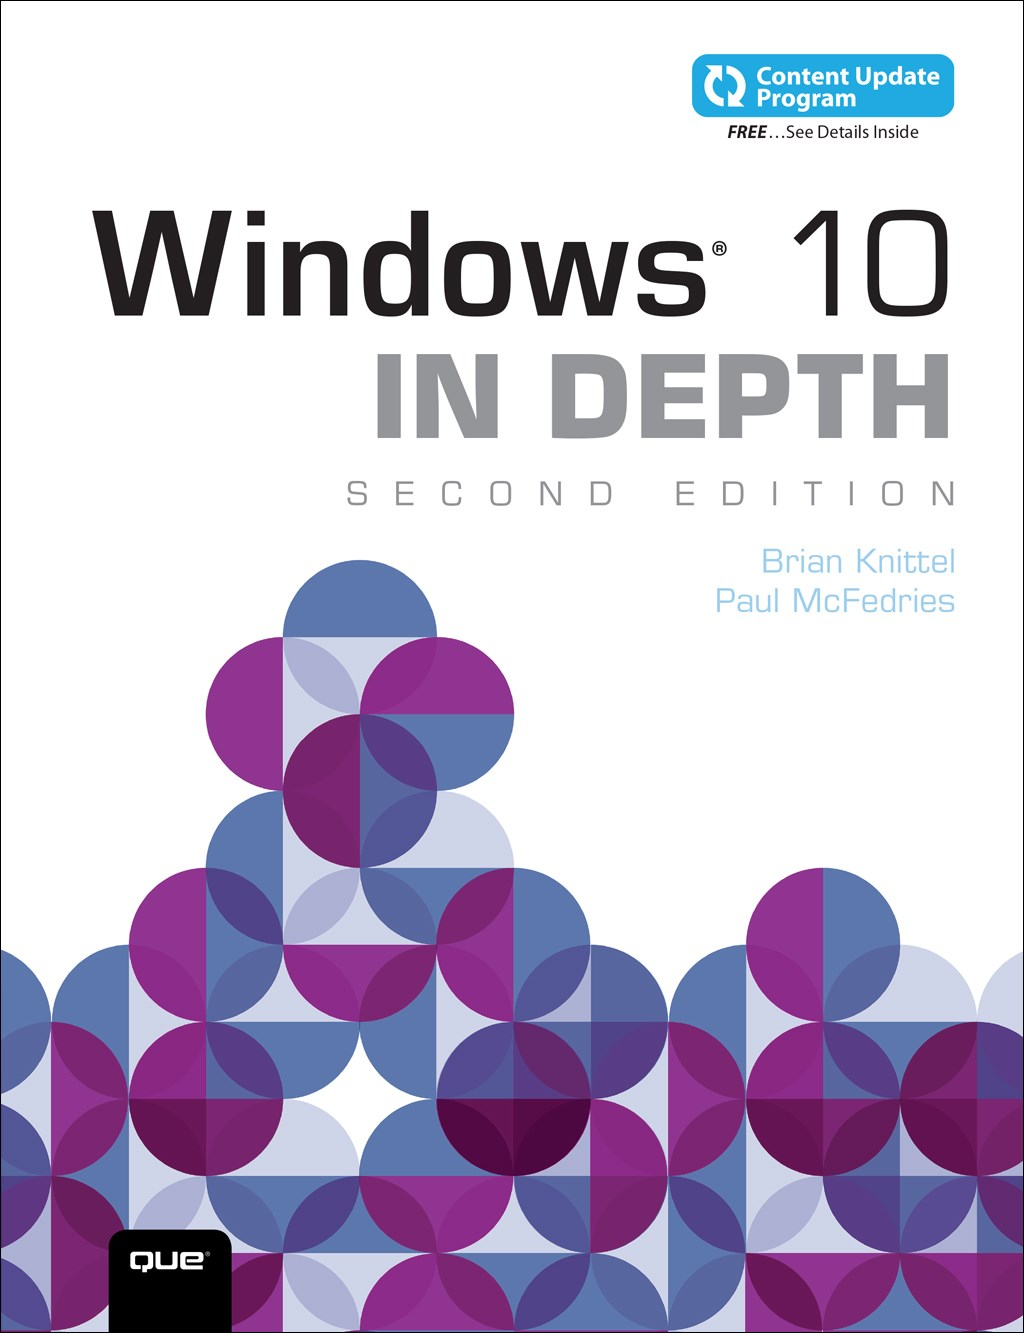 Windows 10 In Depth (includes Content Update Program), 2nd Edition